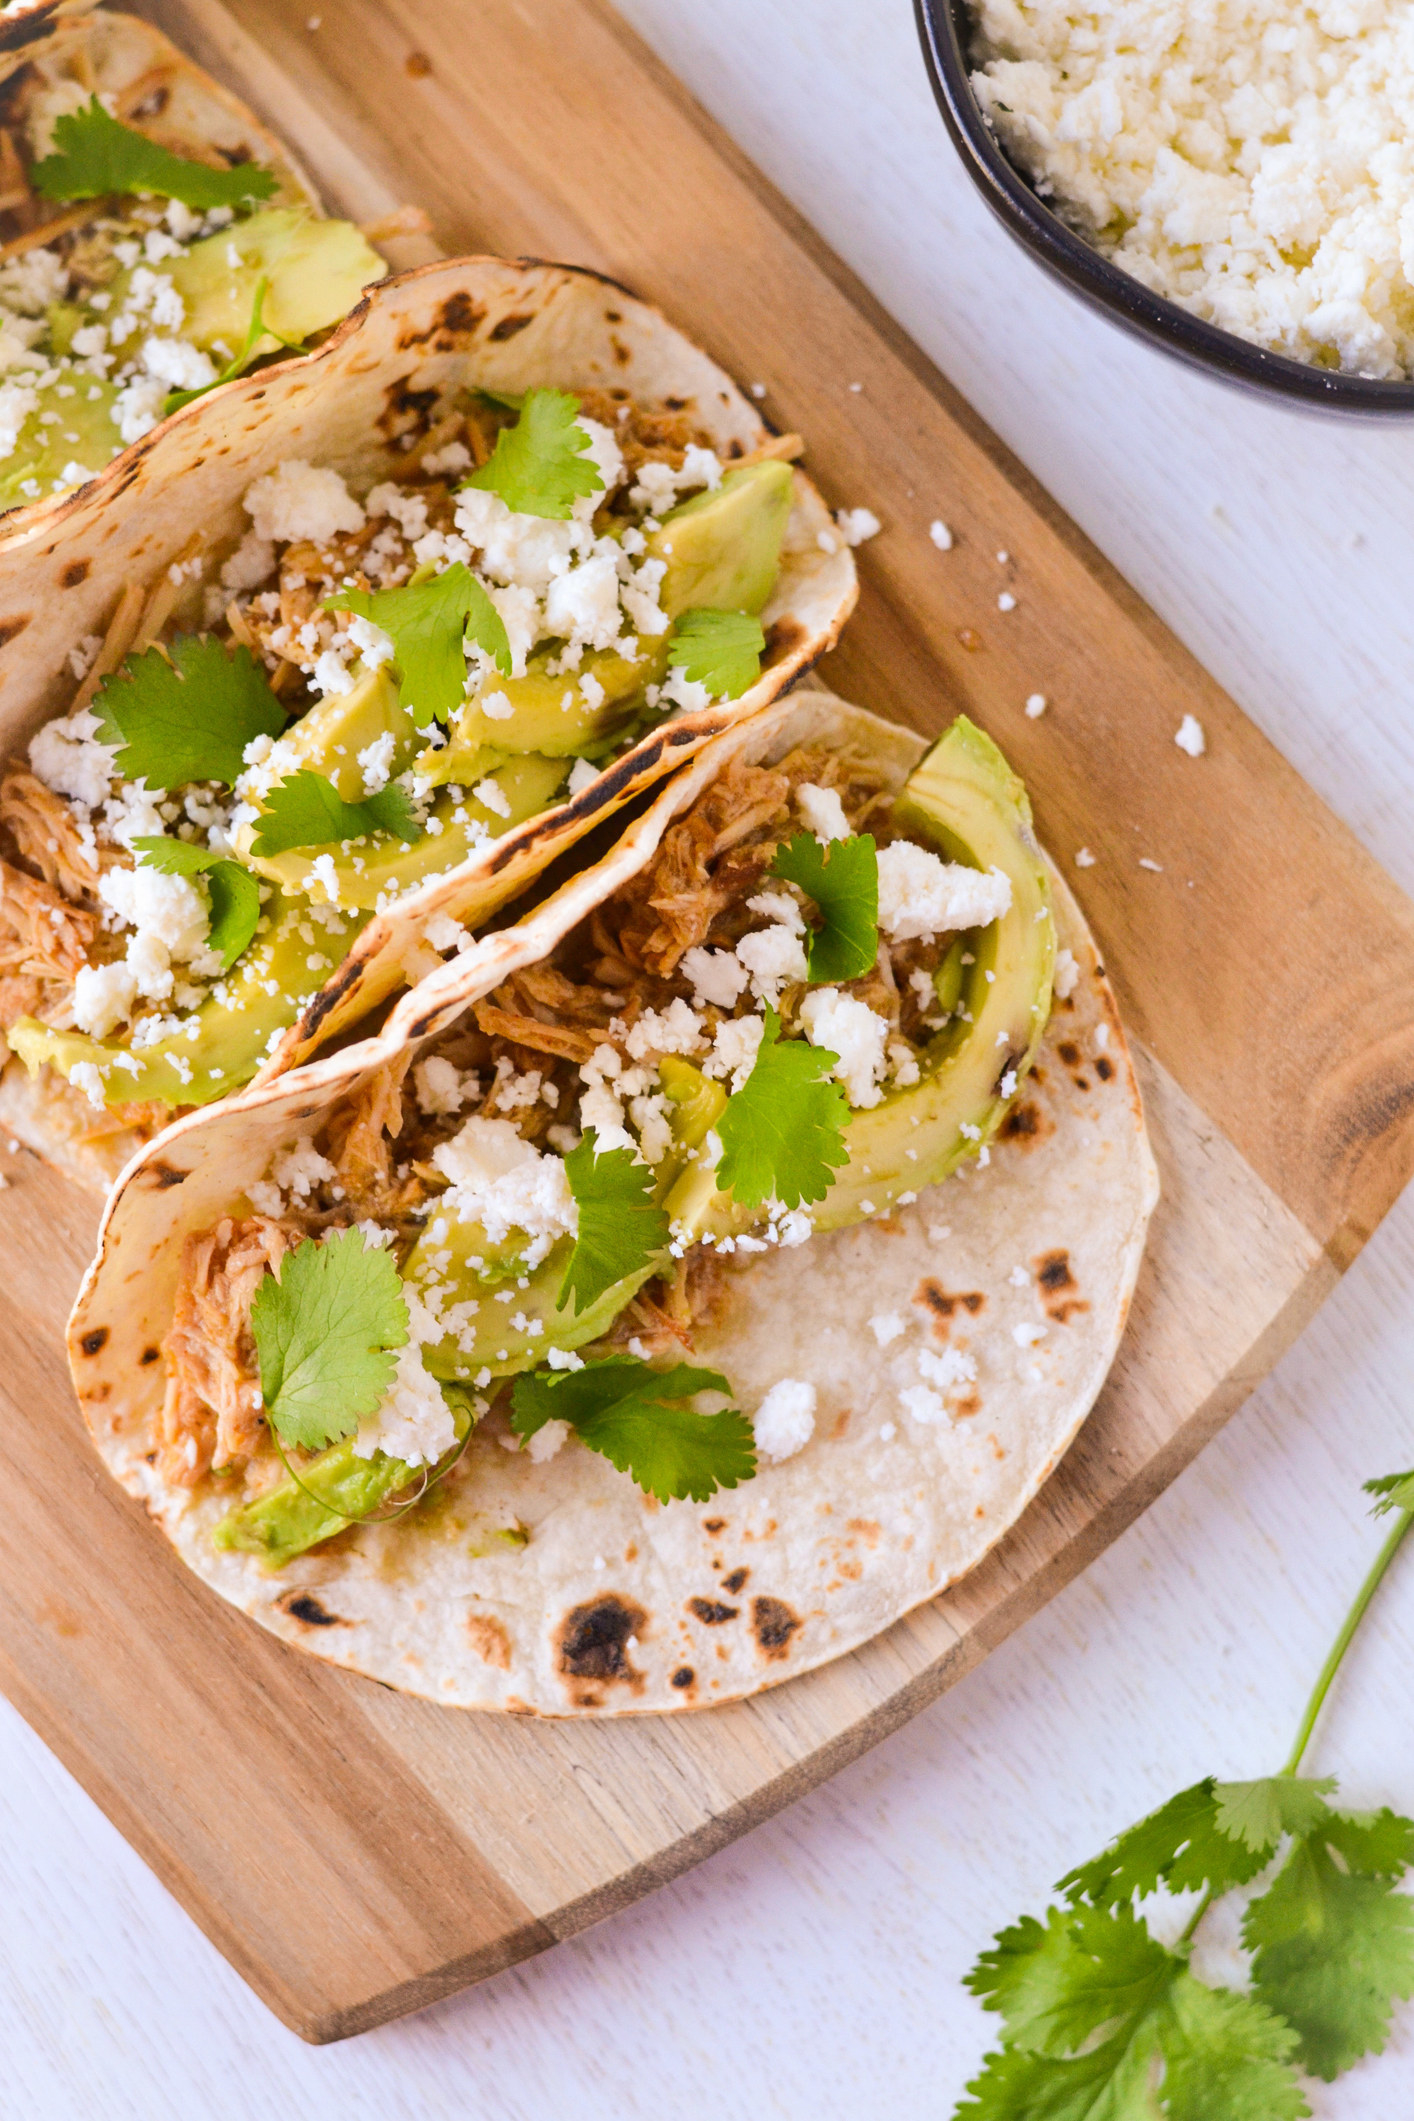 Three tortillas filled with shredded chicken, avocado, cheese, and cilantro.